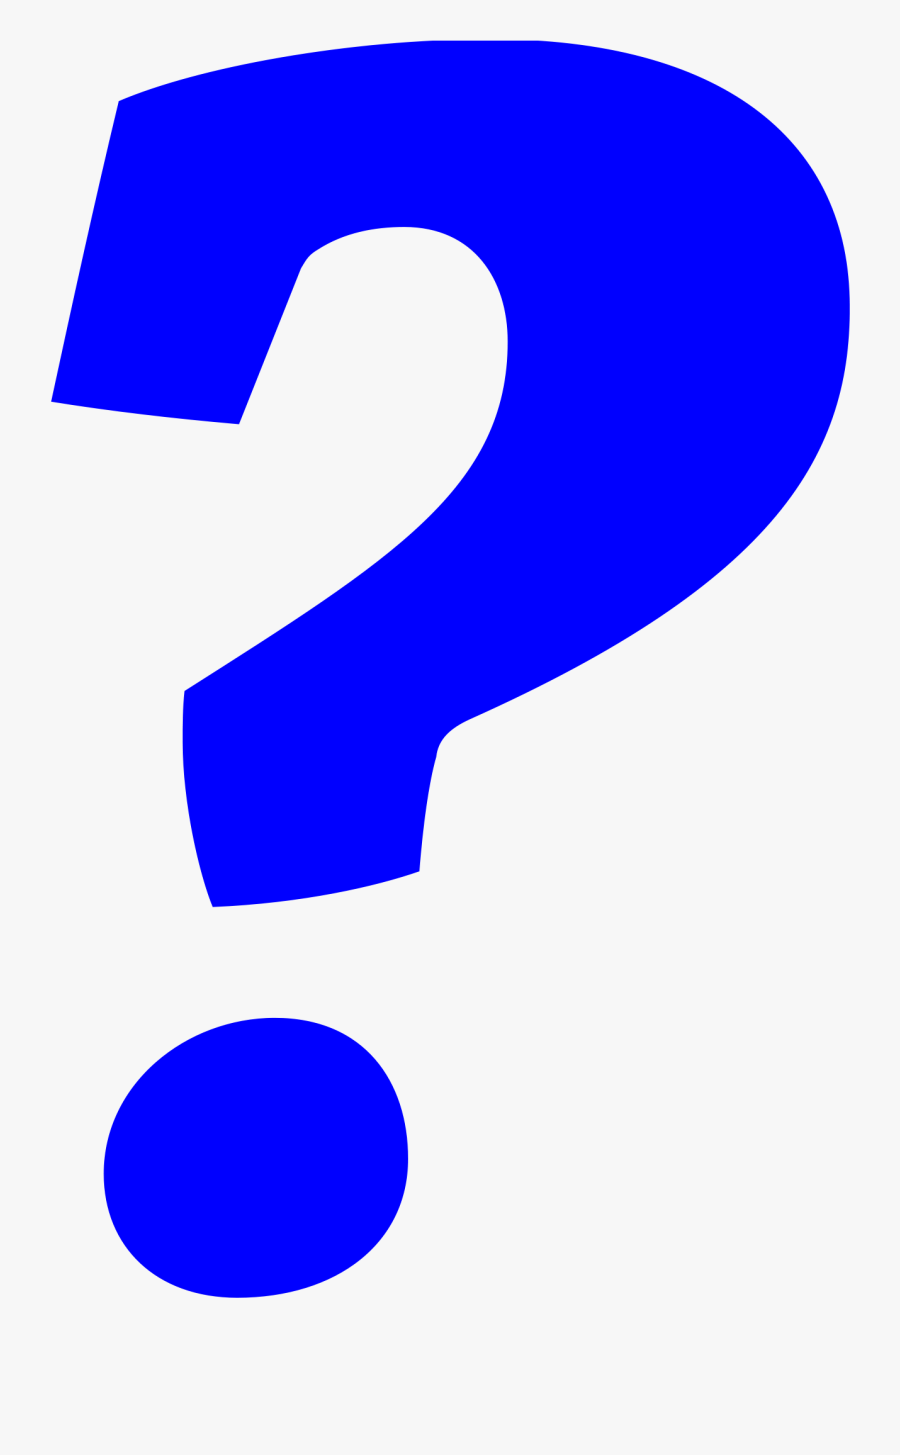 Datei Italic Svg Wikipedia - Blue Question Mark Png, Transparent Clipart